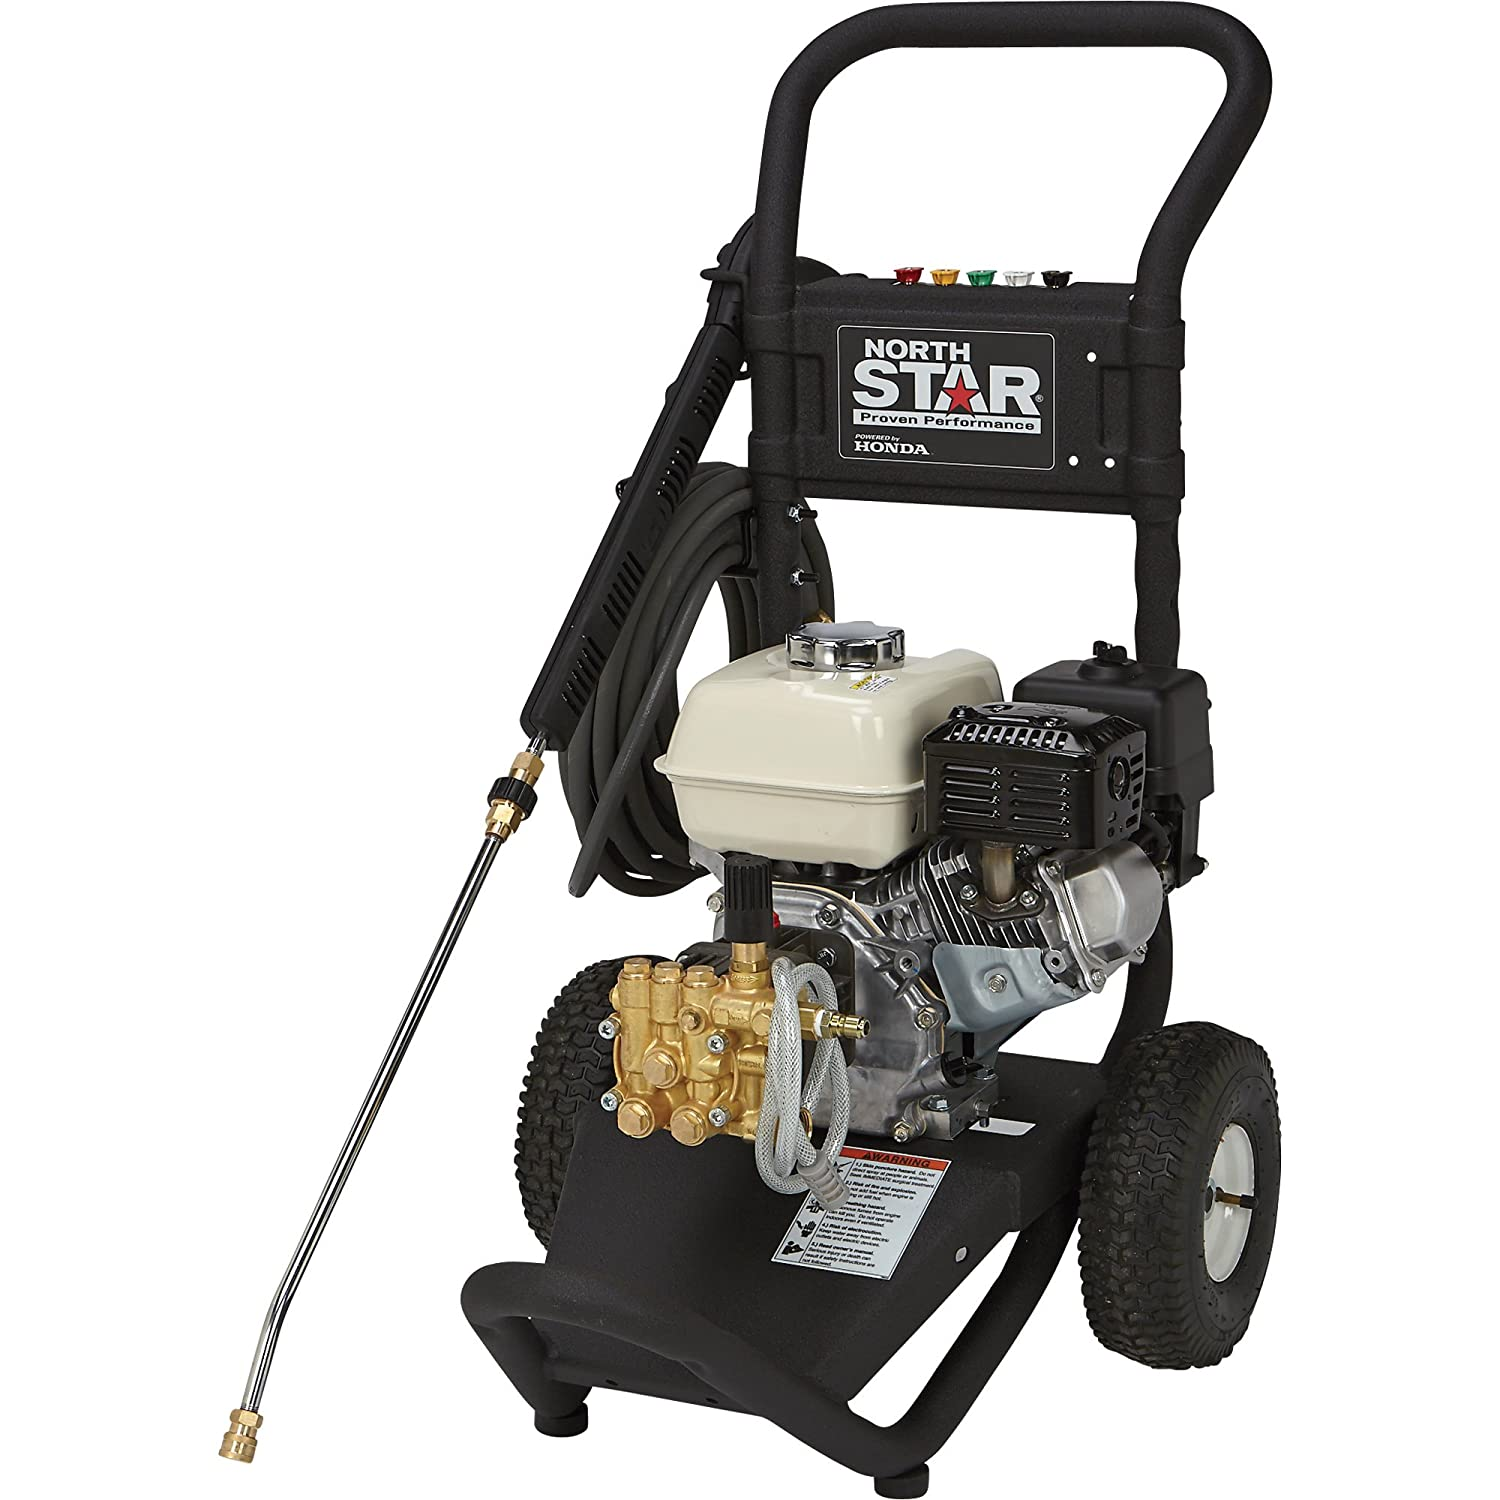 81UrVAPK3TL._SL1500_ amazon com northstar gas cold water pressure washer 3000 psi  at n-0.co